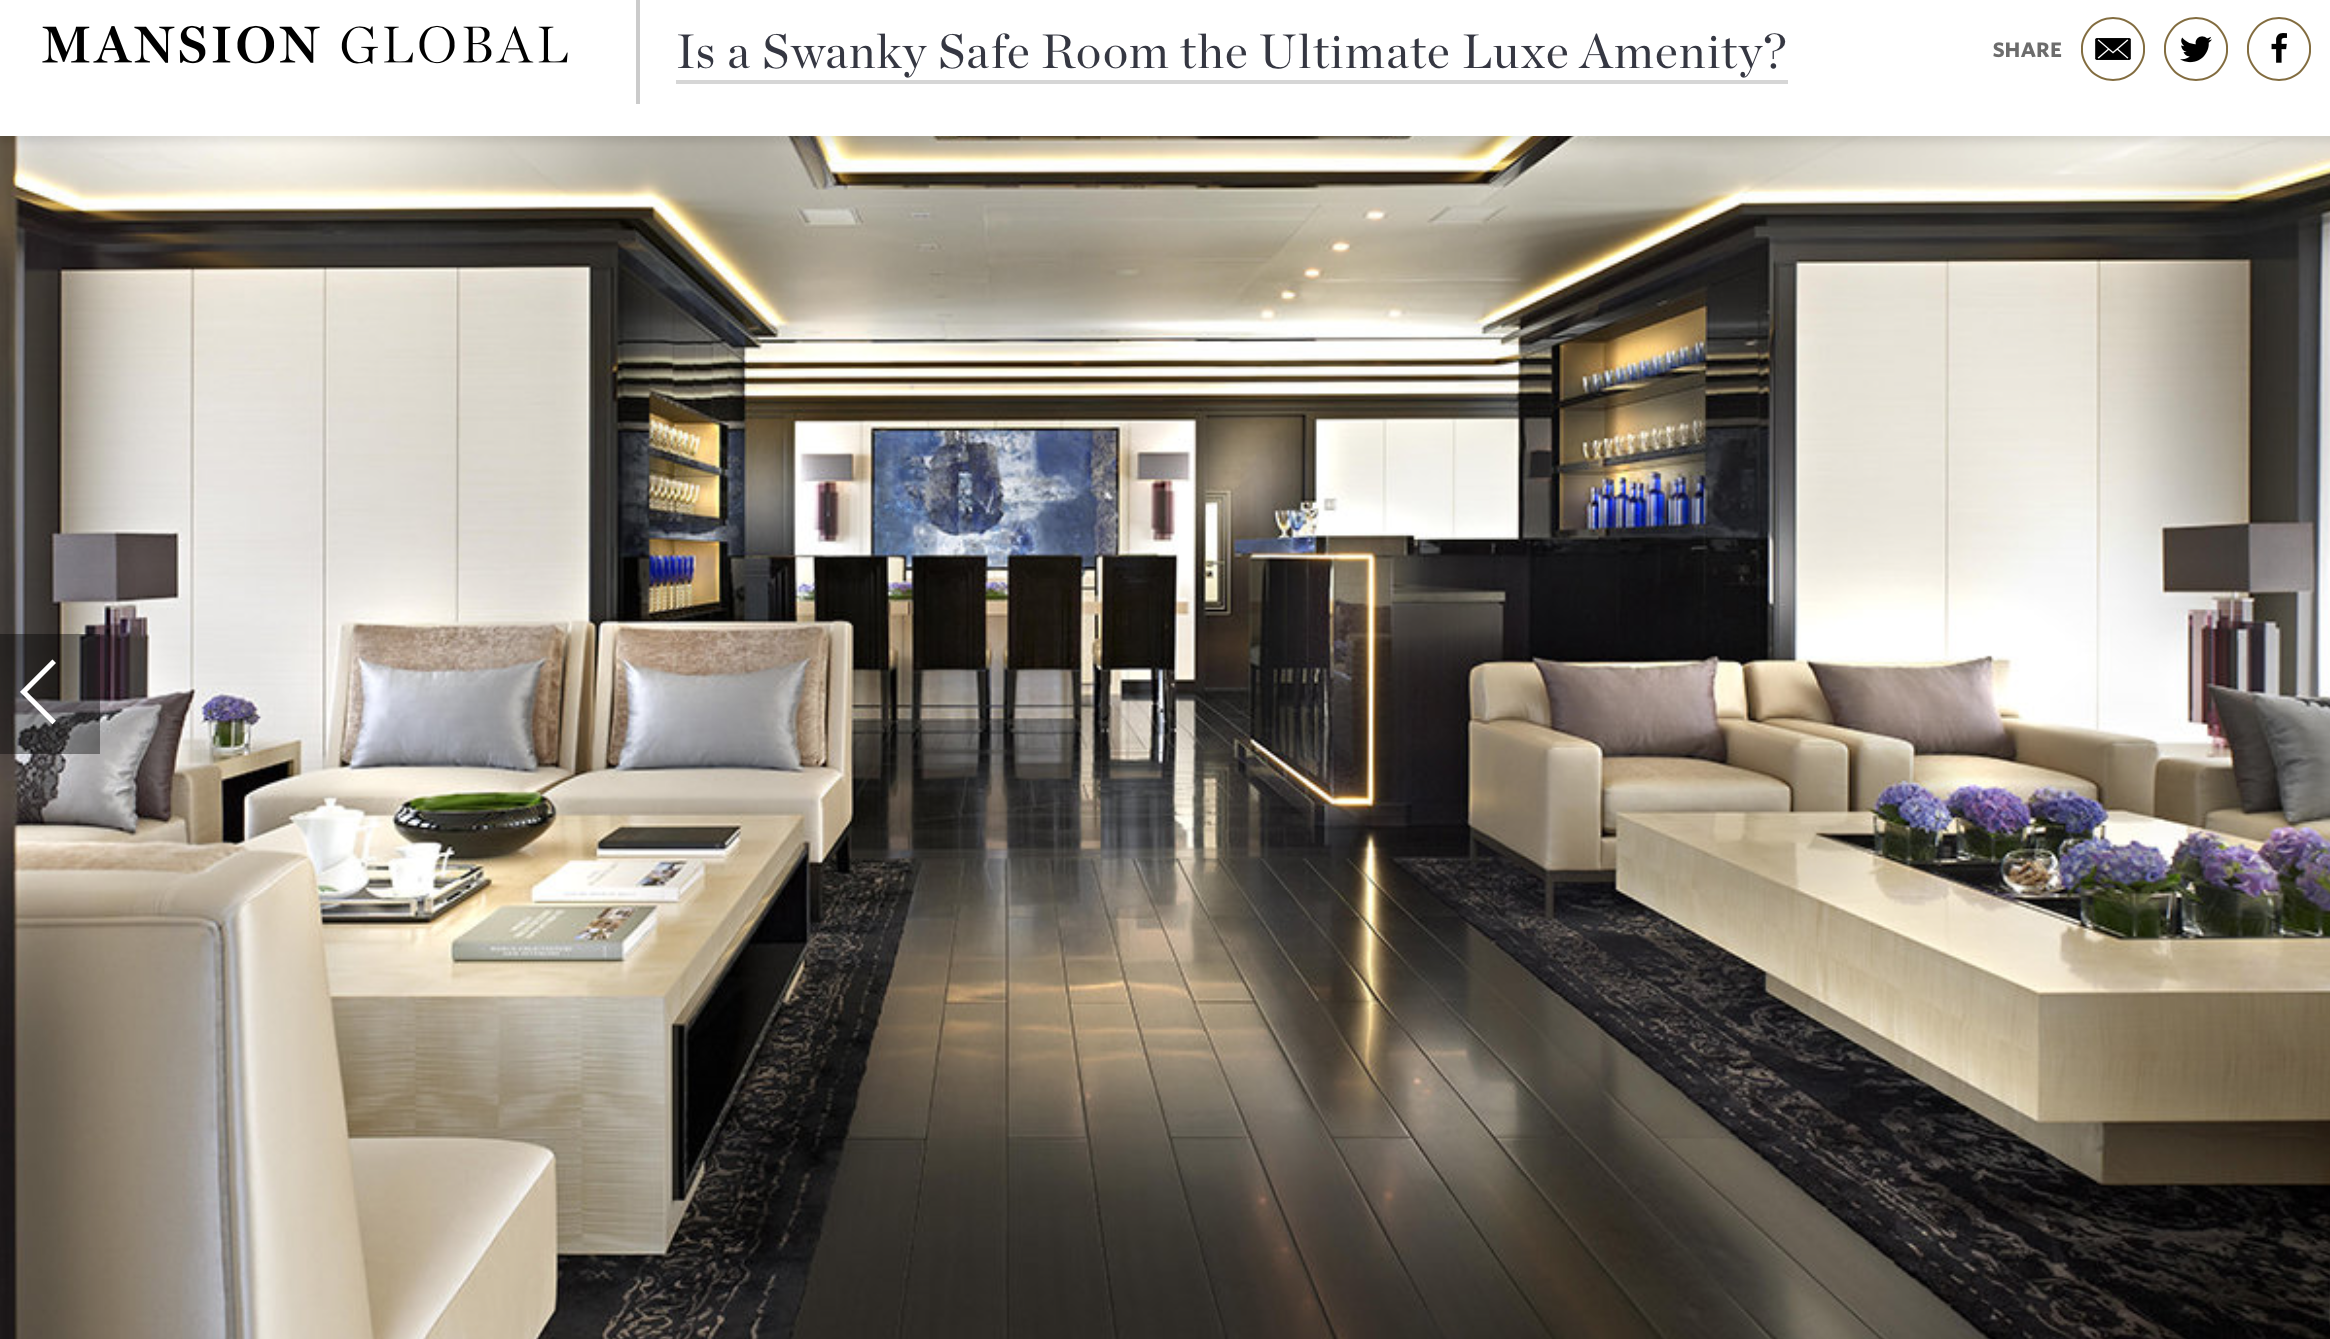 Is a swanky safe room the ultimate luxe amenity?